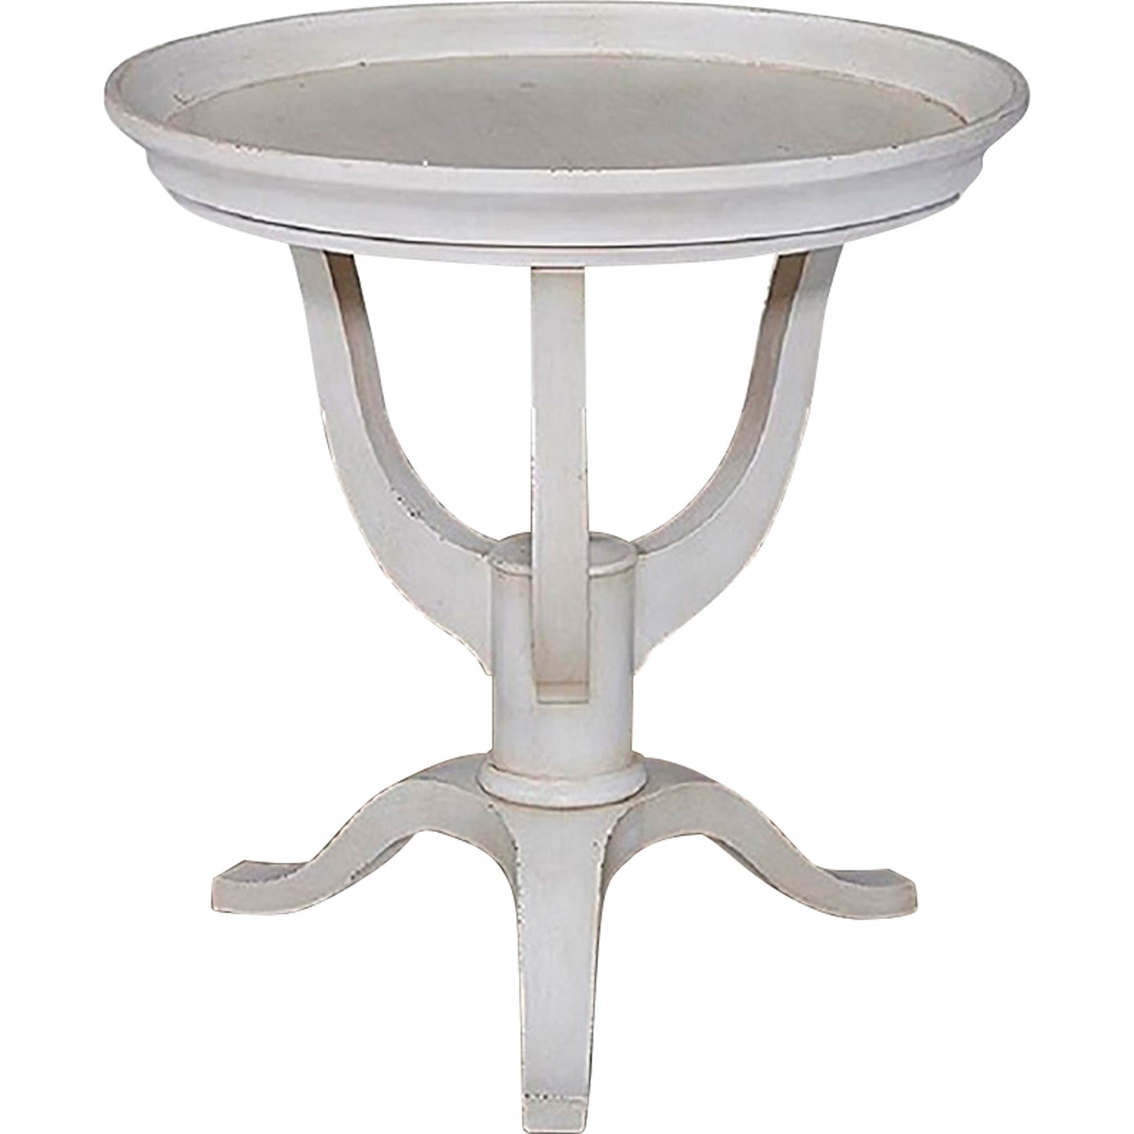 bassett furniture artisanal round lamp table | living room tables